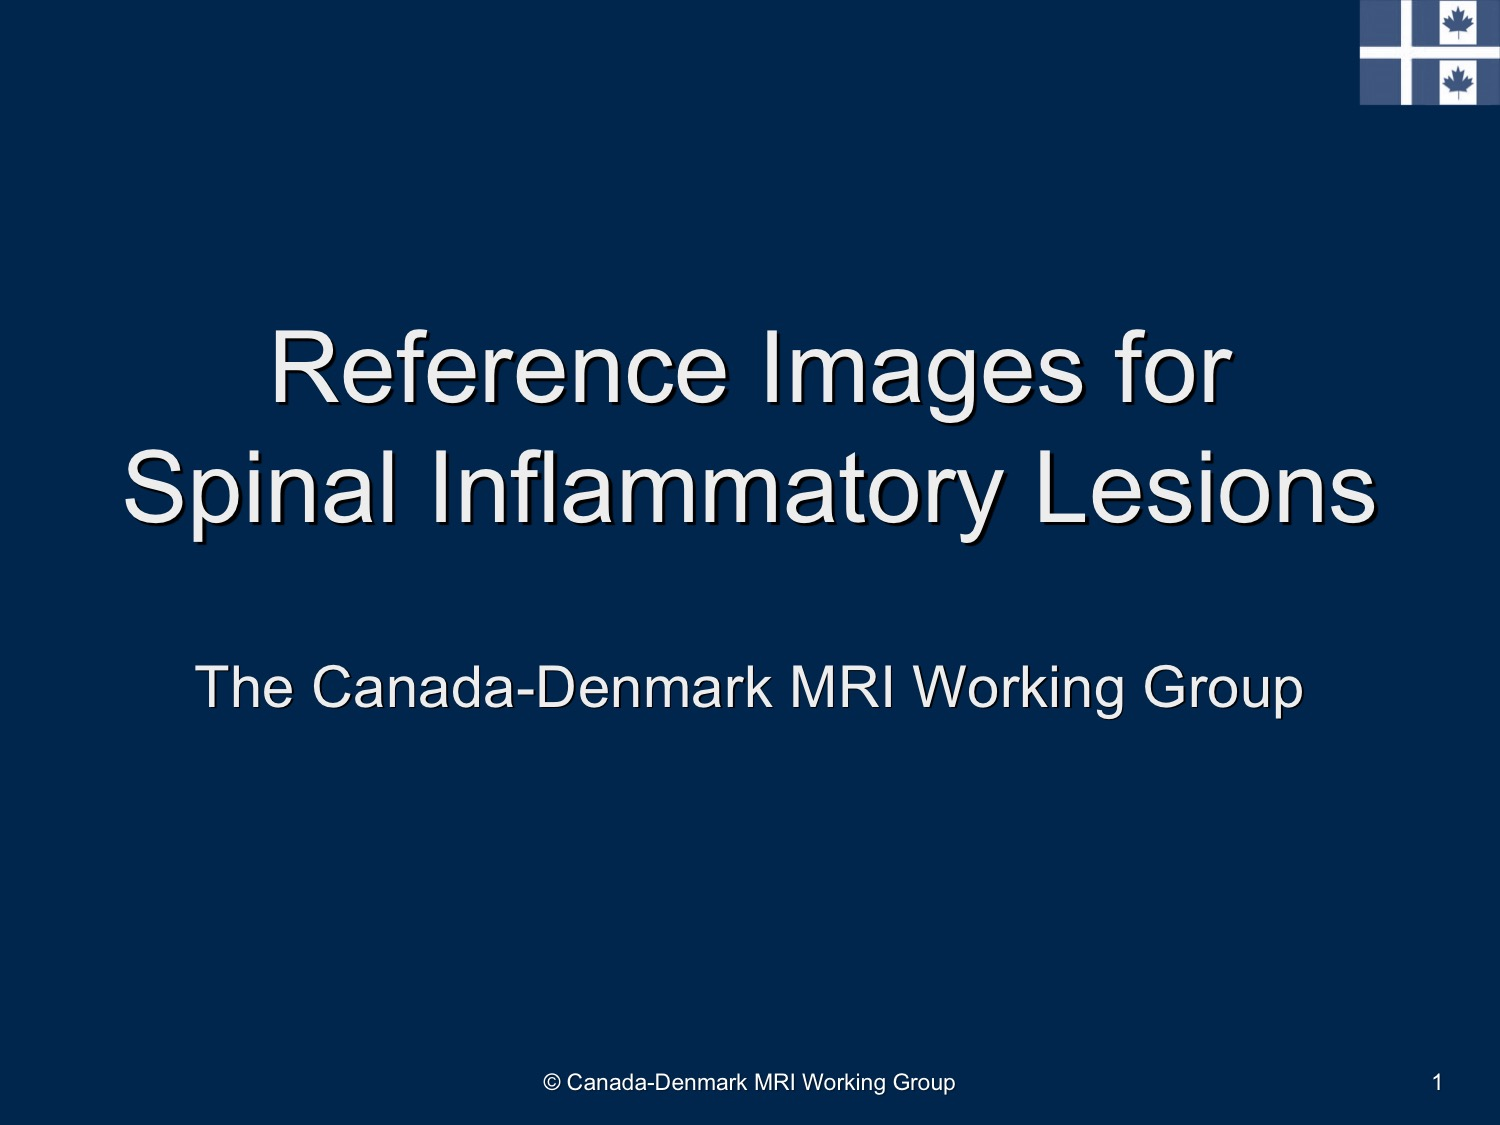 Reference Images for Spinal Inflammation Slide